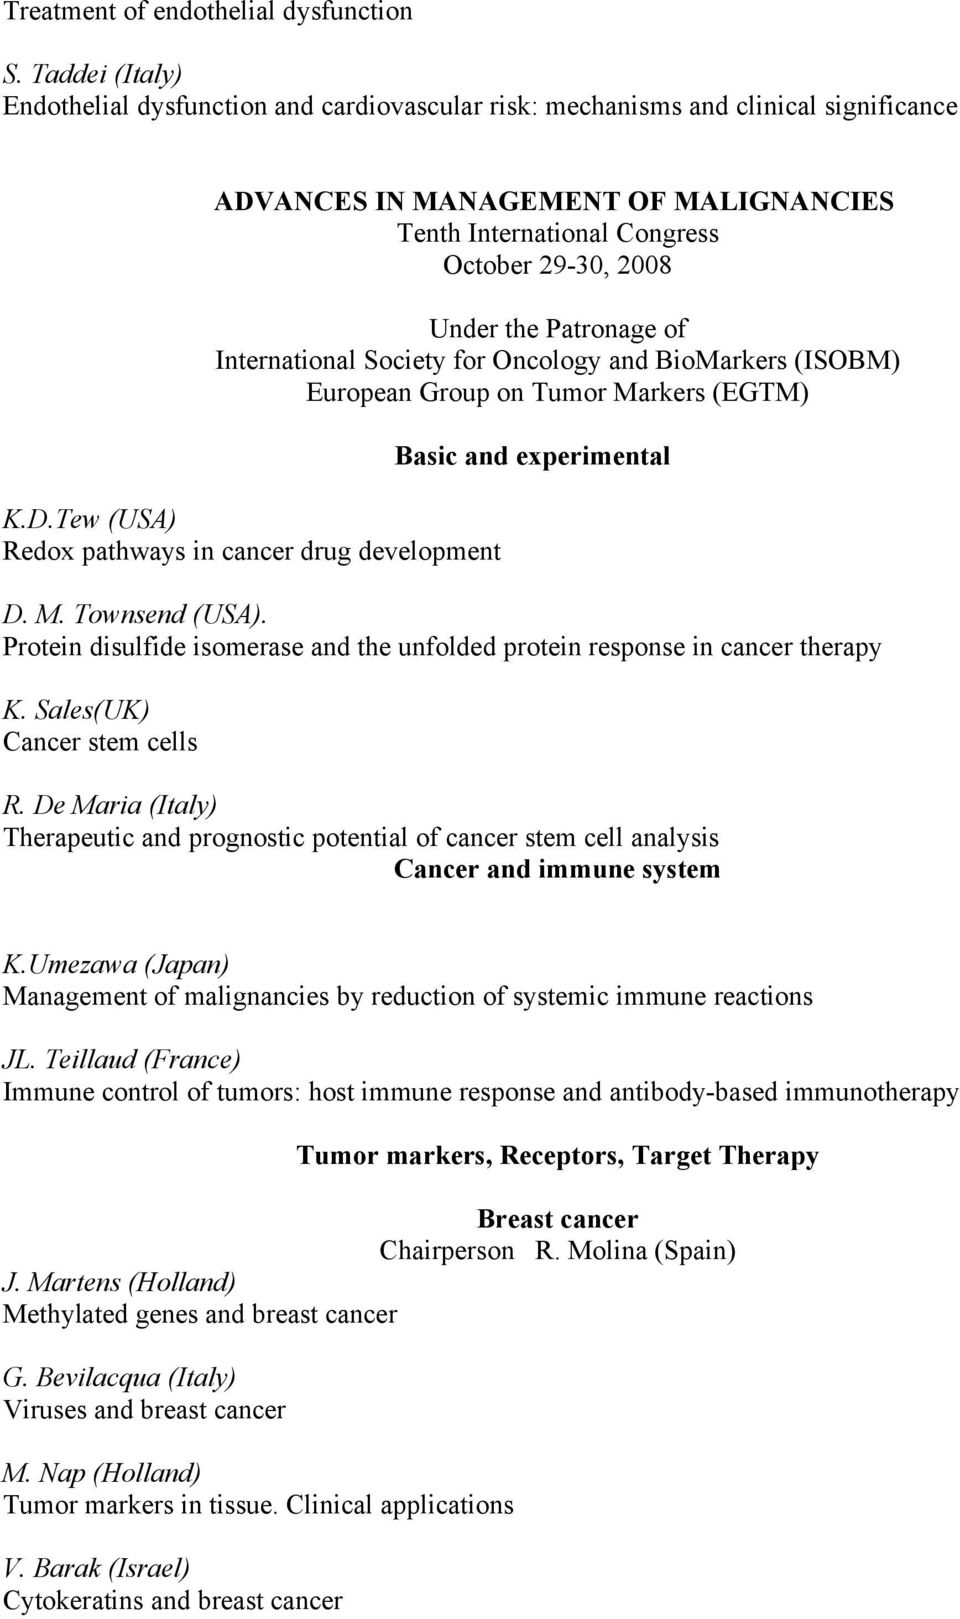 Patronage of International Society for Oncology and BioMarkers (ISOBM) European Group on Tumor Markers (EGTM) K.D.Tew (USA) Redox pathways in cancer drug development Basic and experimental D. M. Townsend (USA).